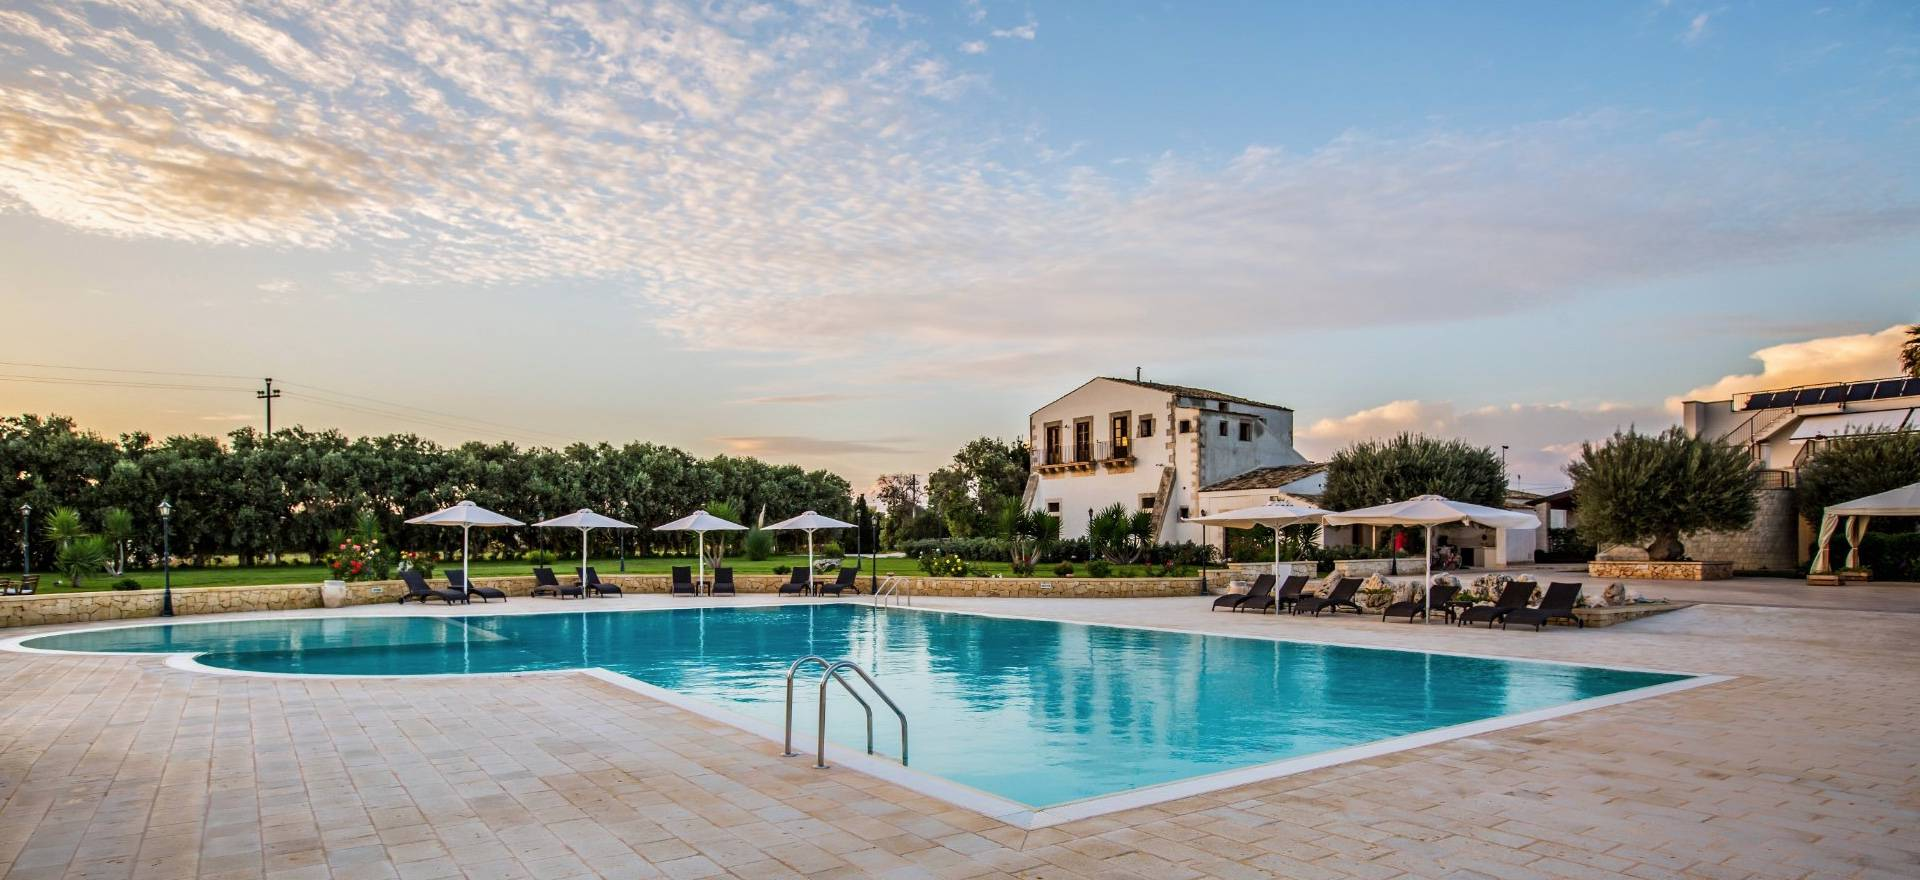 Agriturismo Sicily Agriturismo with large pool near beach